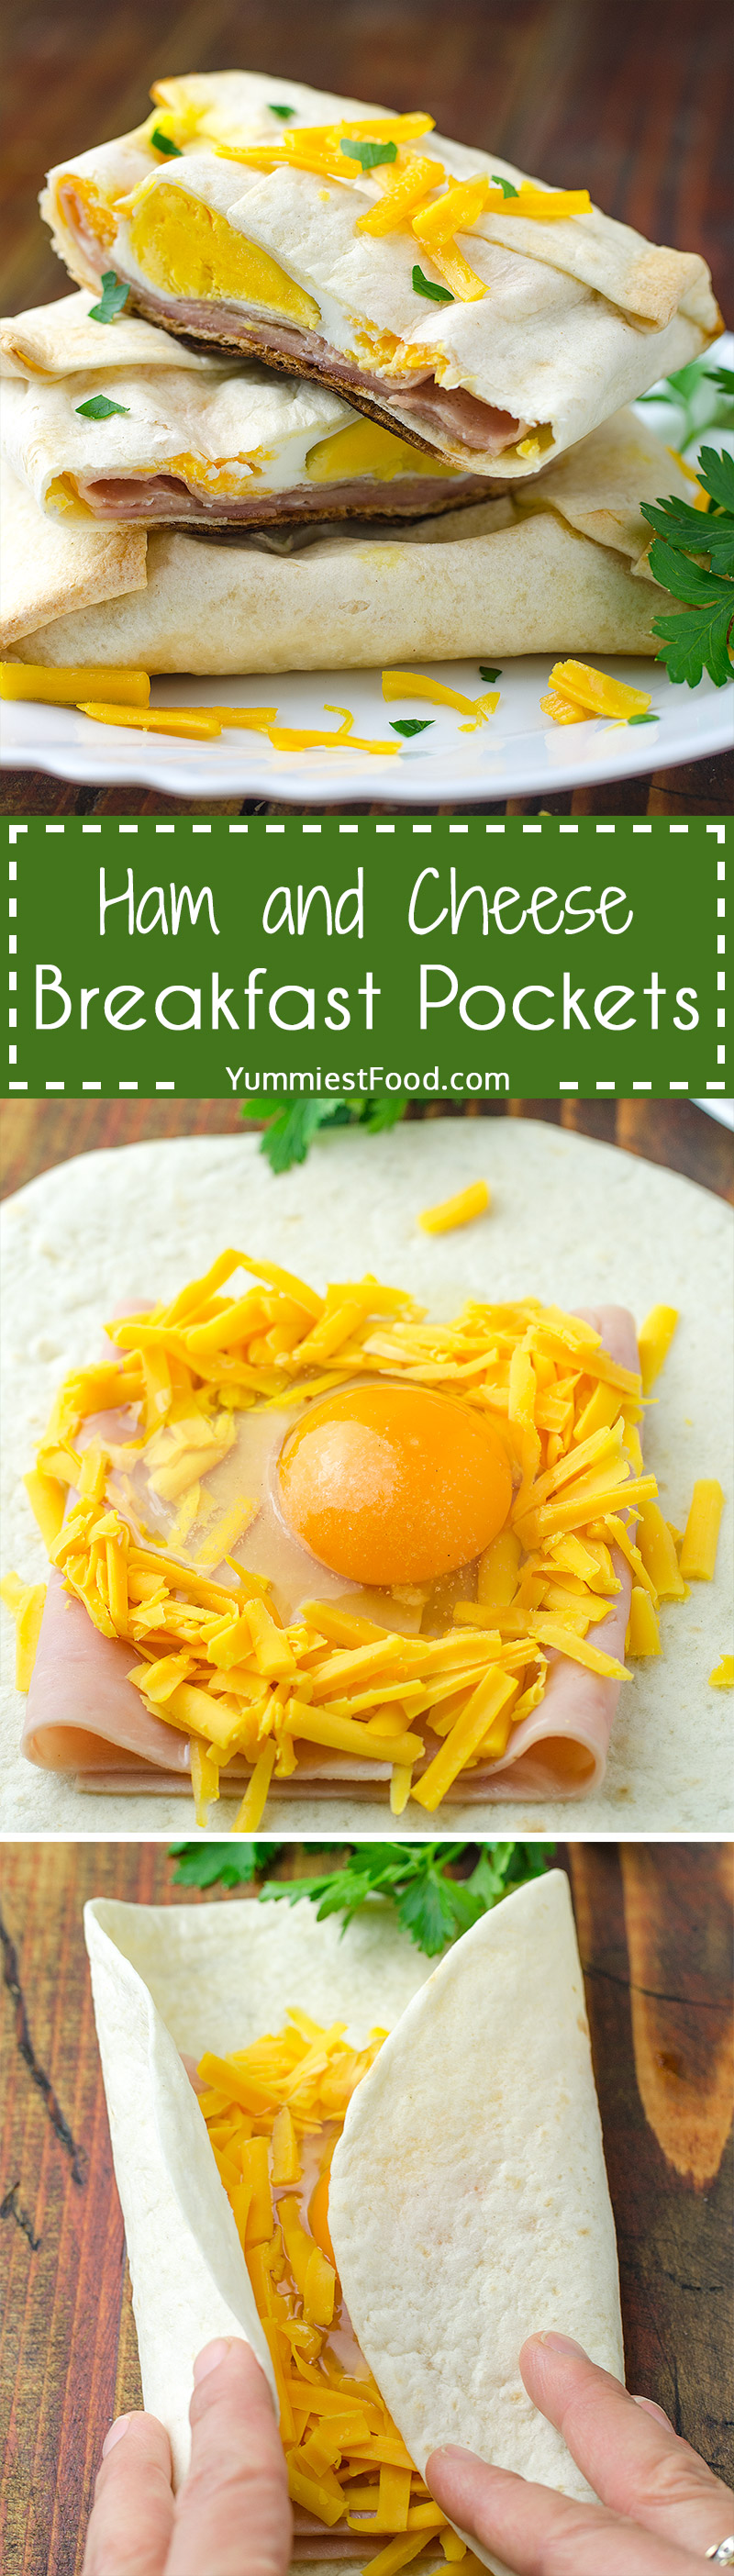 Easy Ham and Cheese Breakfast Pockets - Great simple breakfast recipe